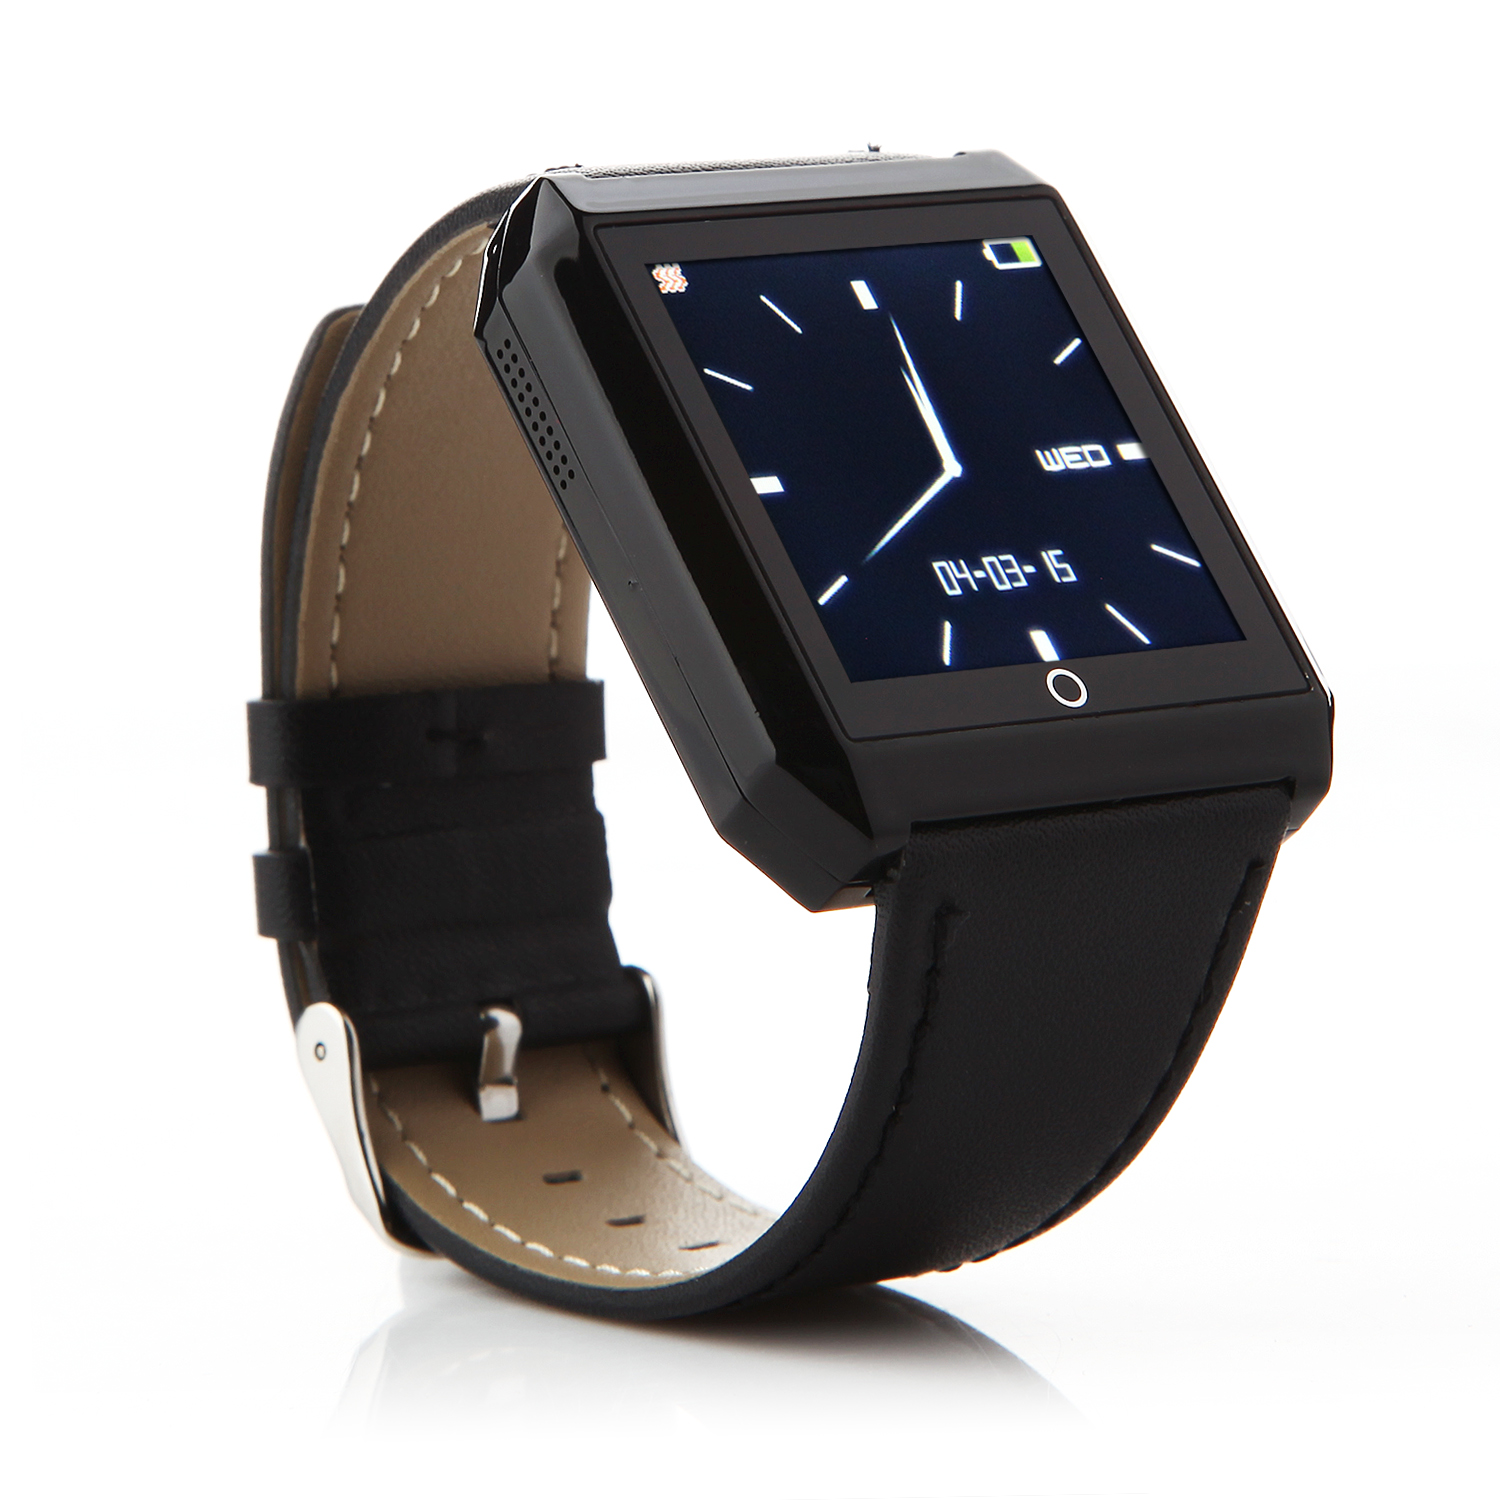 RWATCH R6S Bluetooth Smart Remote Control Watch for iOS Android Smartphones Black